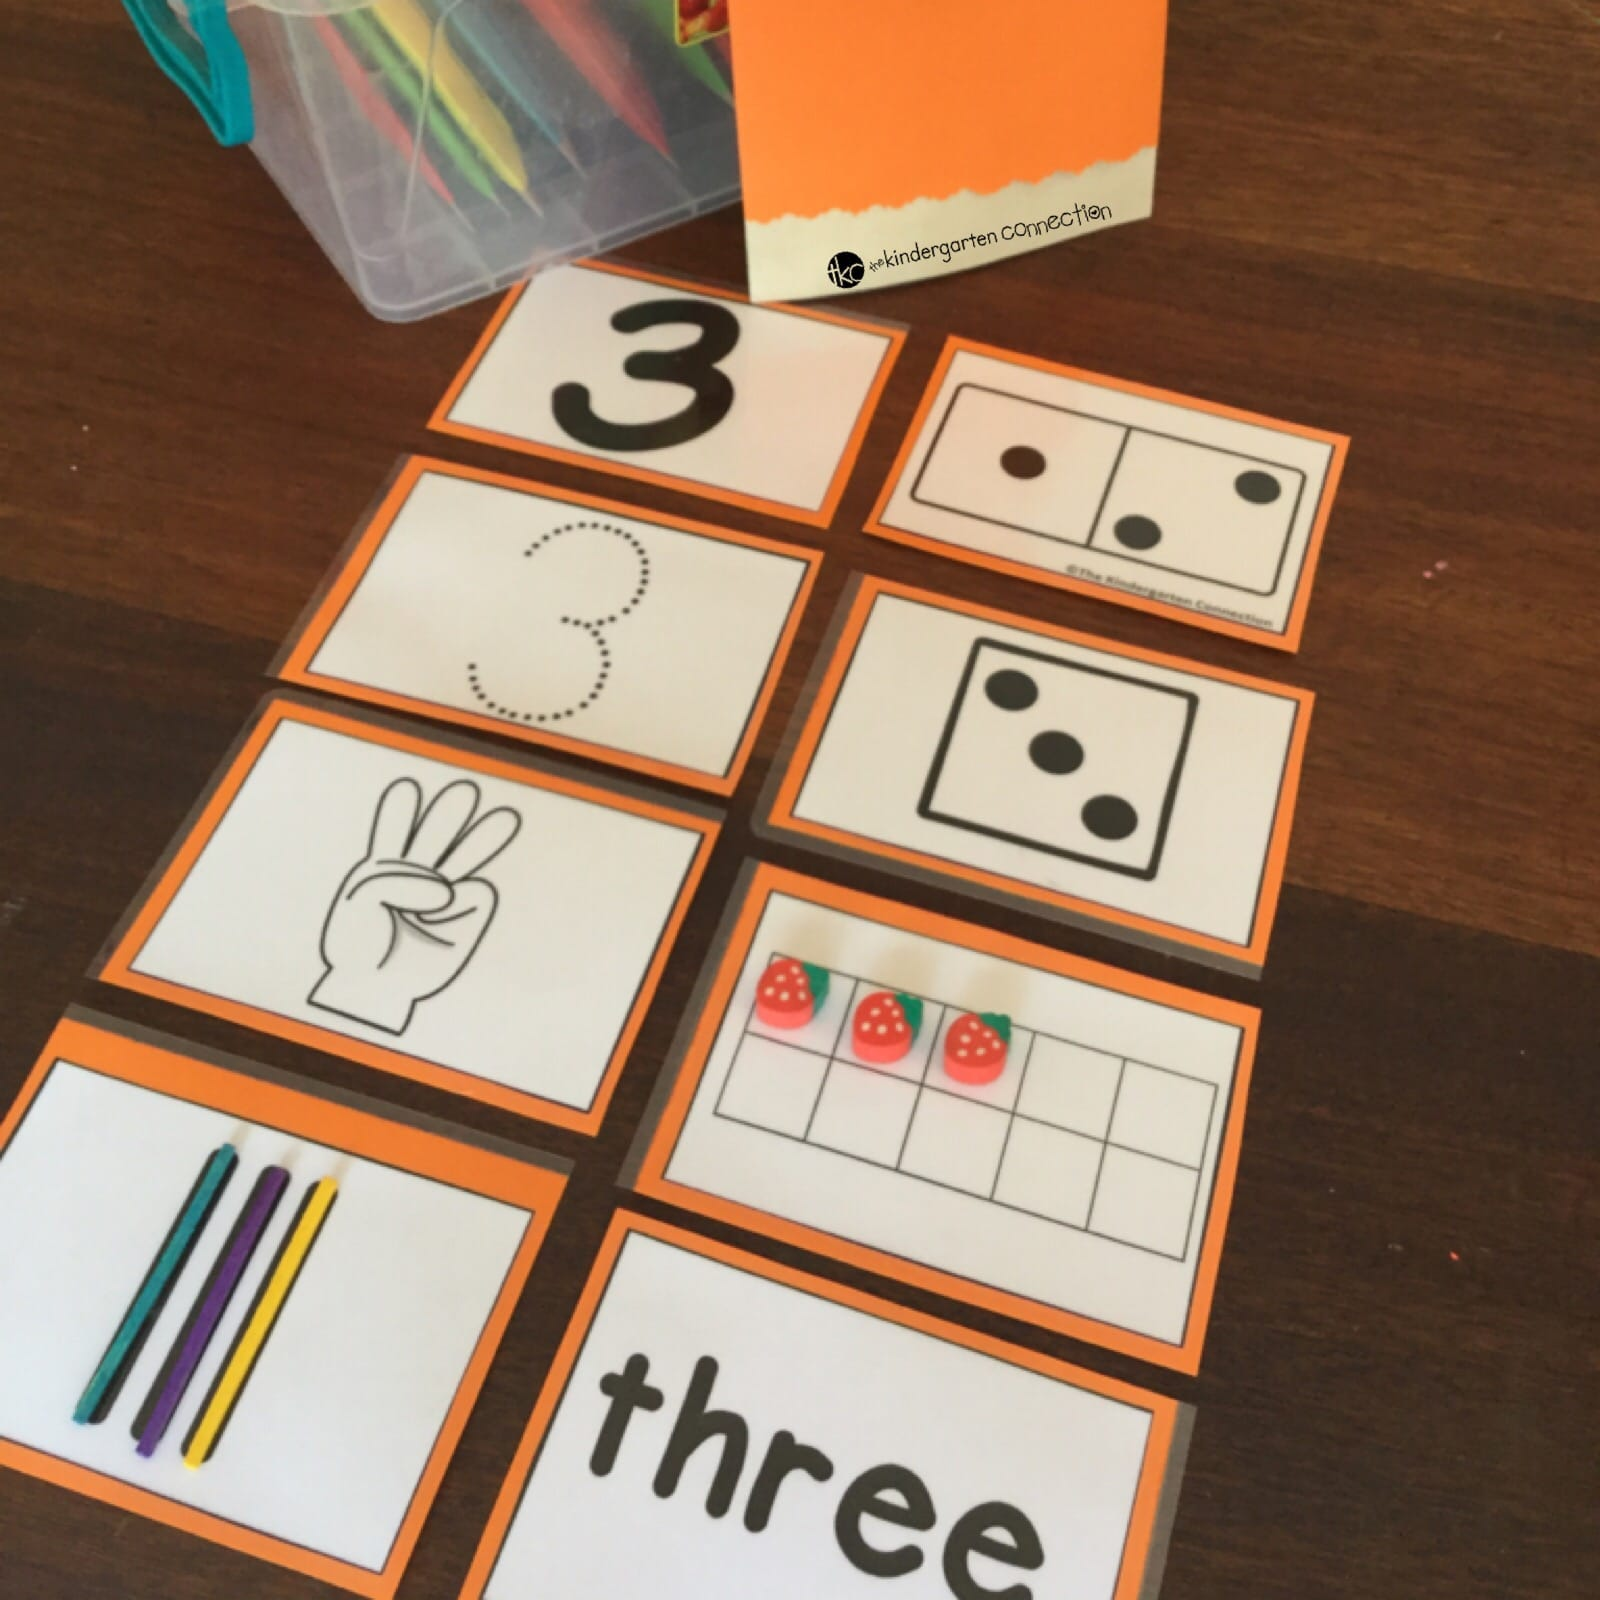 Build number sense and work on skills like number identification, counting, subitizing, addition, and more with this fun surprise number envelopes activity!